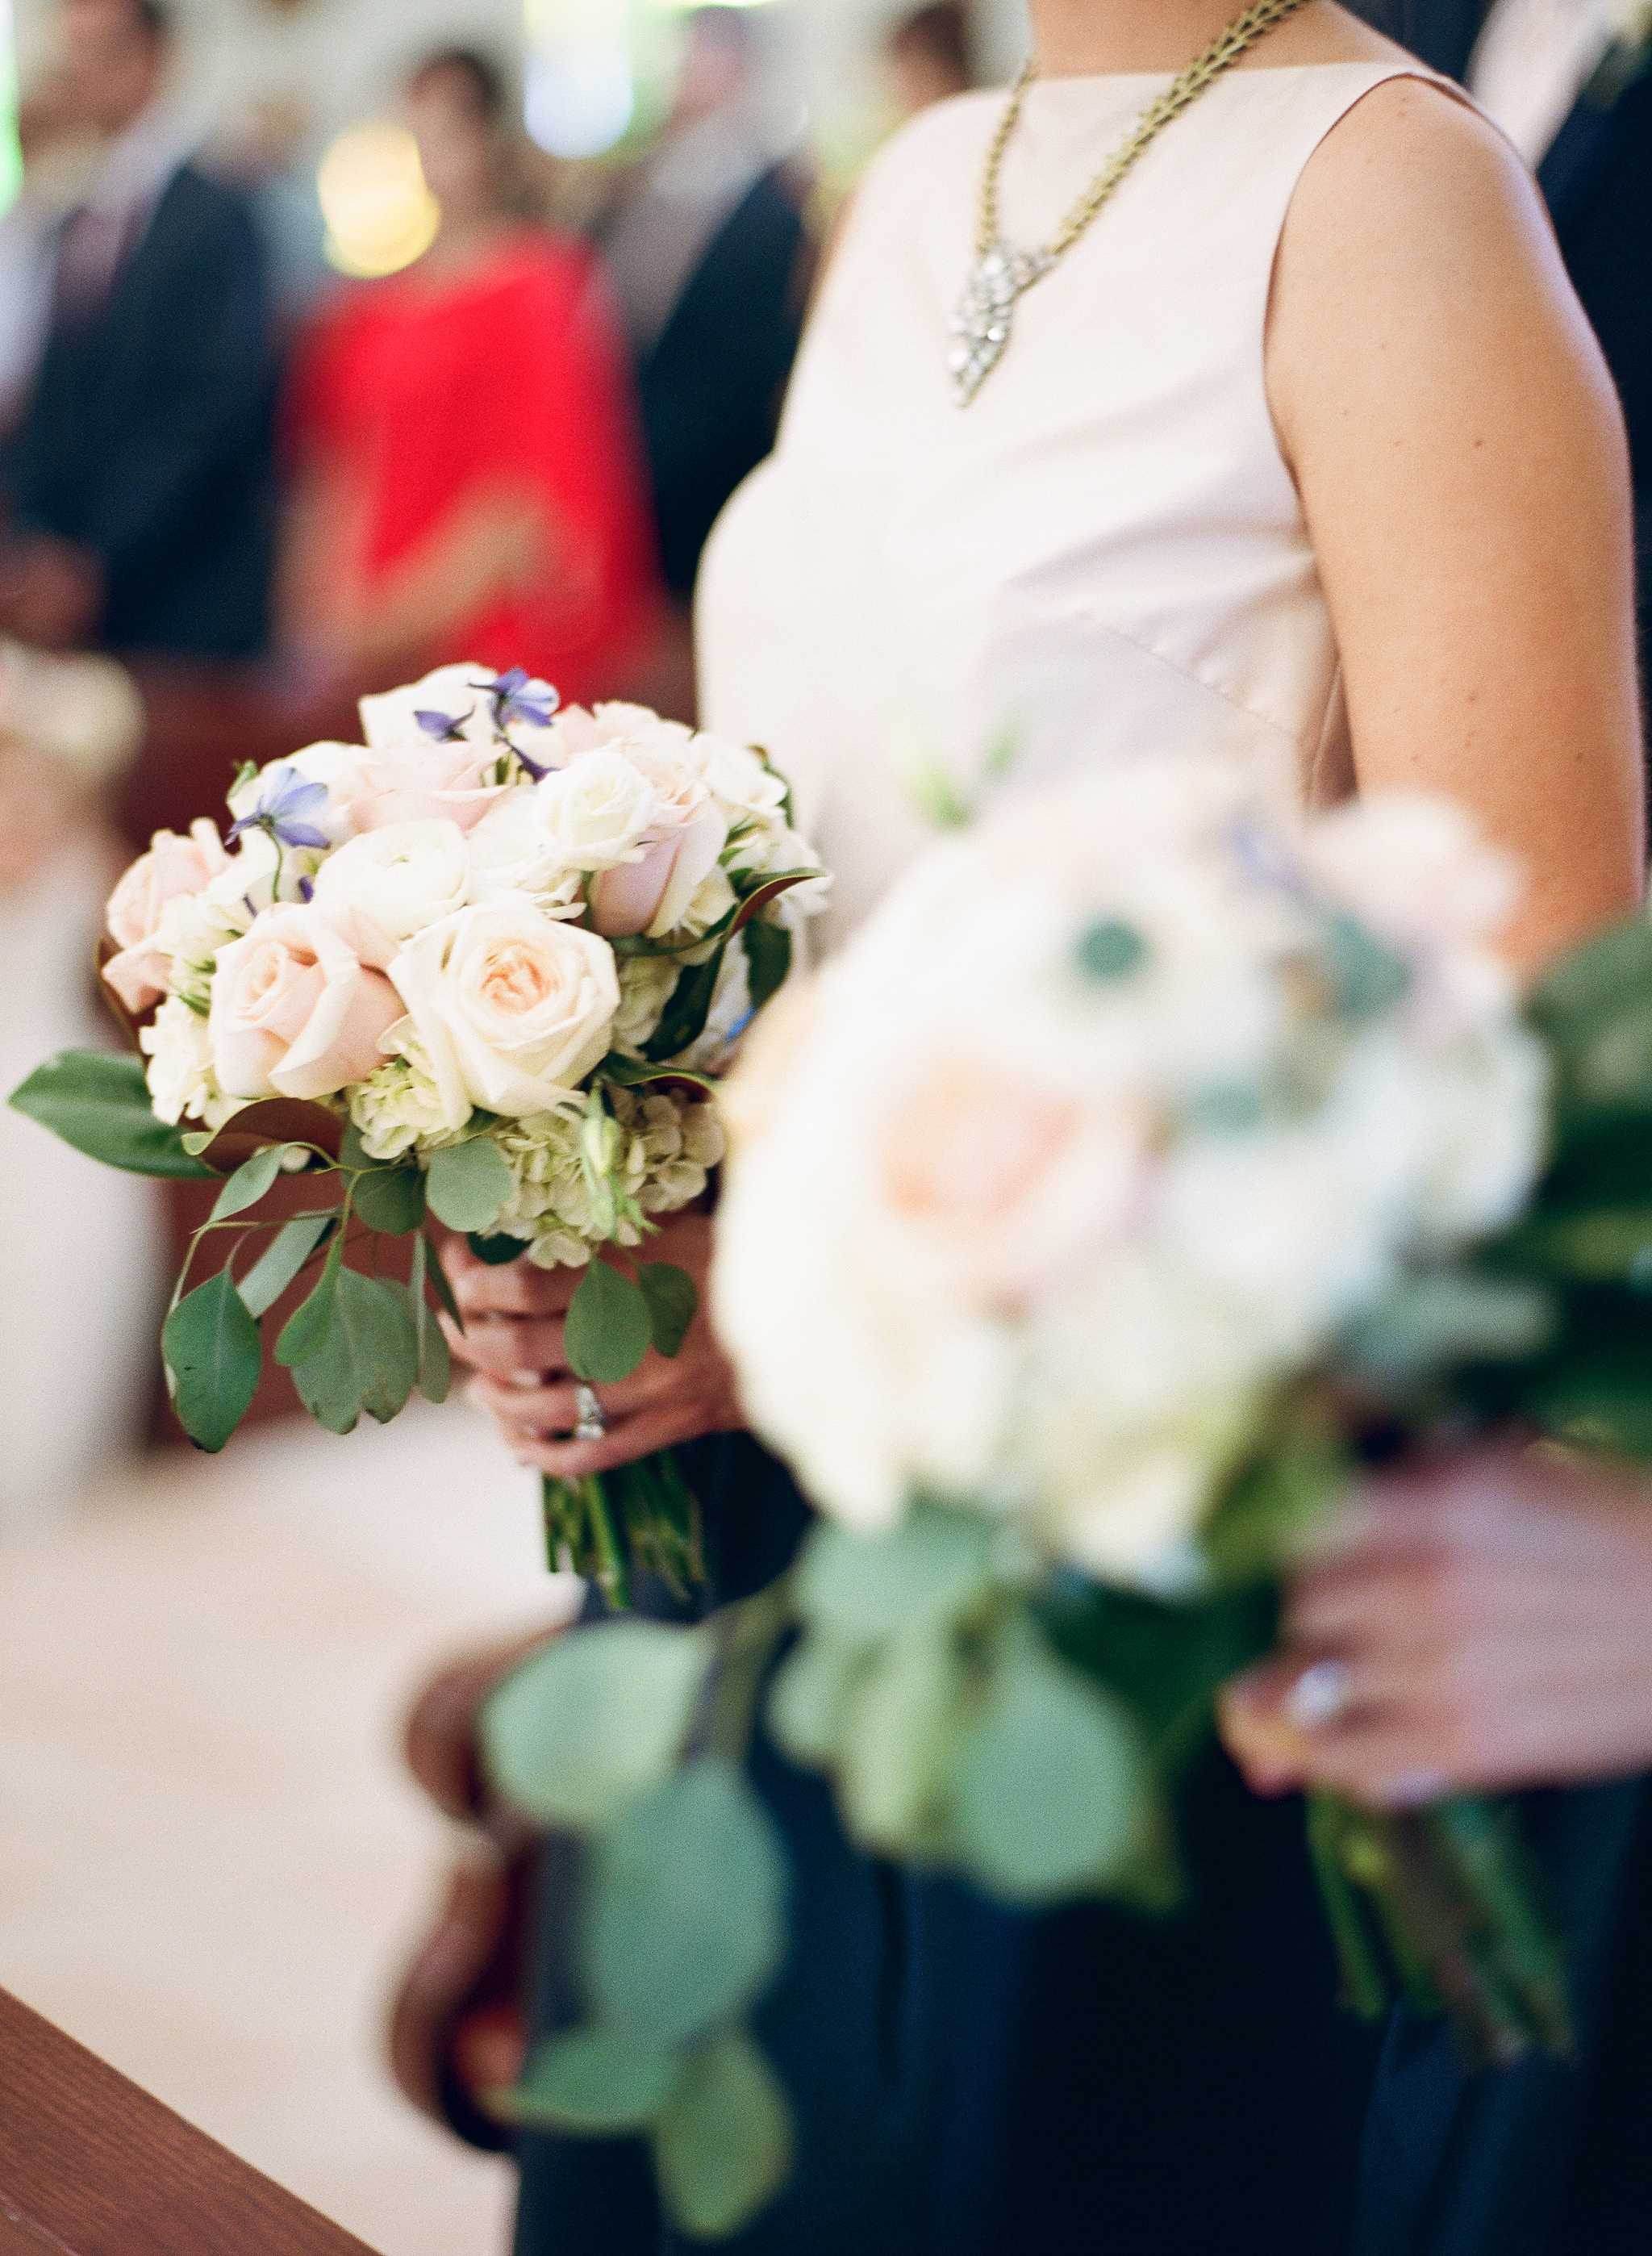 Southern Fete, Southern Wedding, Flowers by Rodney, White and Blush Flower Bouquet